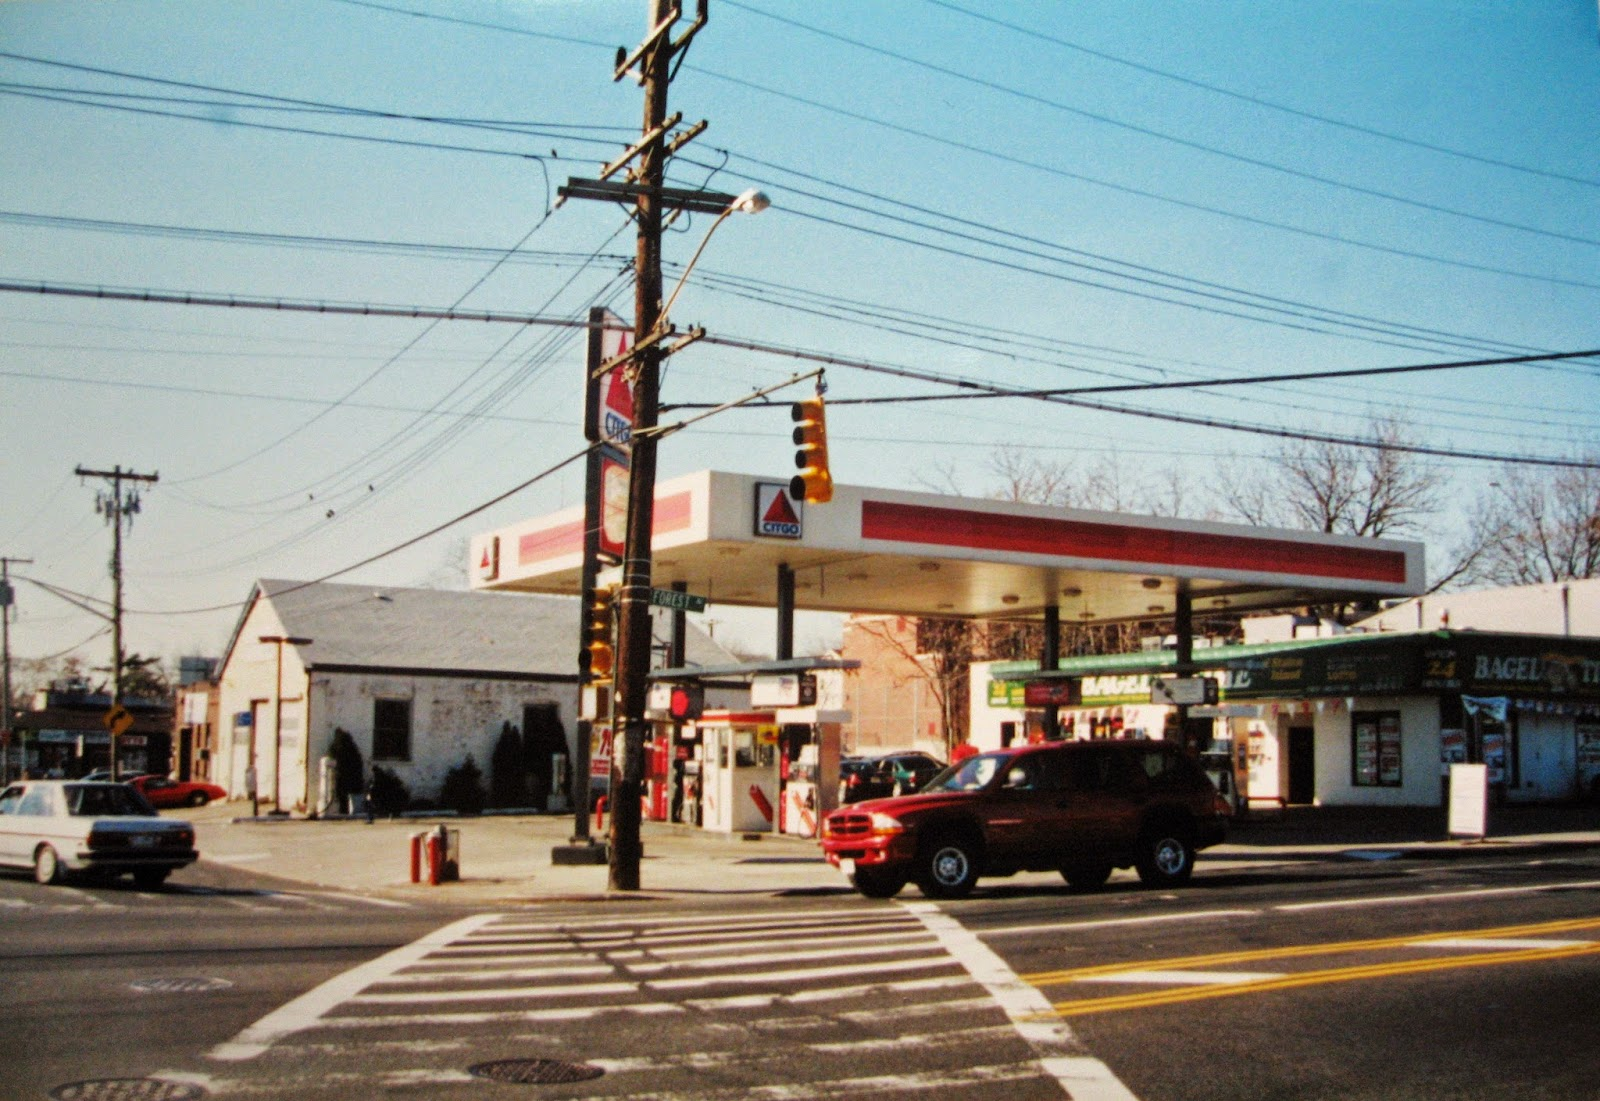 Where Silvestri's service station once stood across Forest Ave from the Orchard